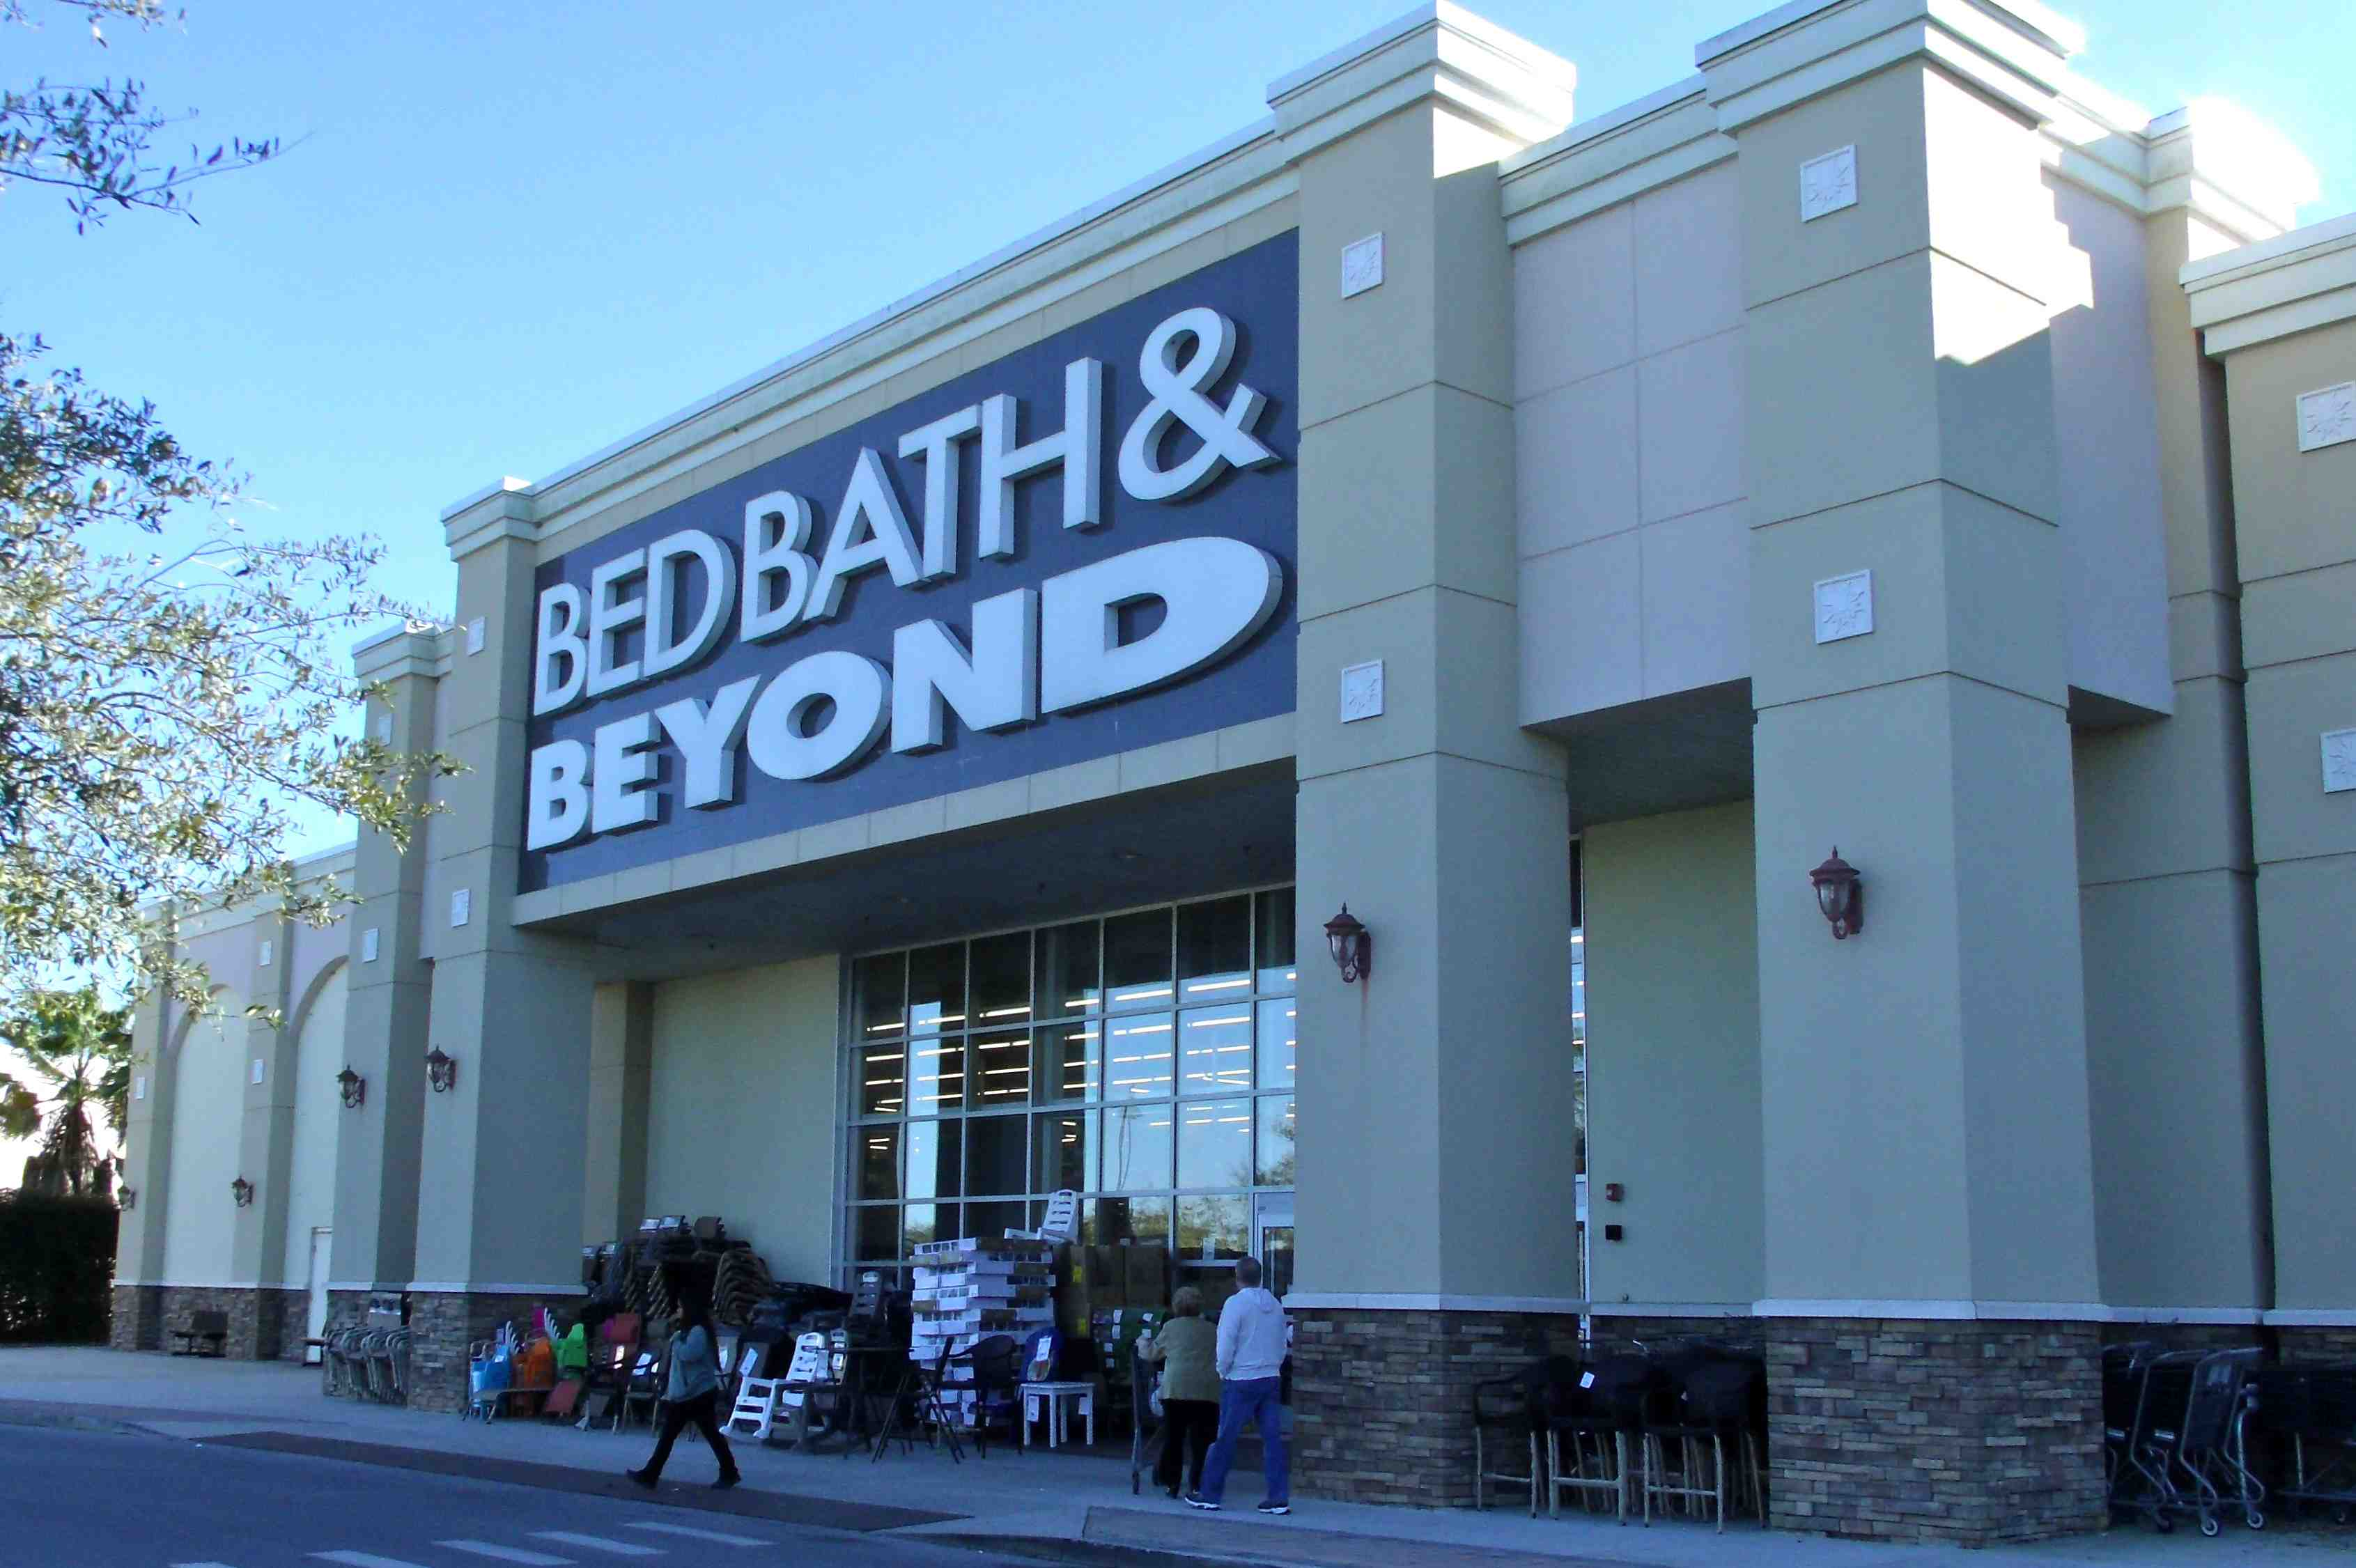 Bed bath and beyond beaumont - Download